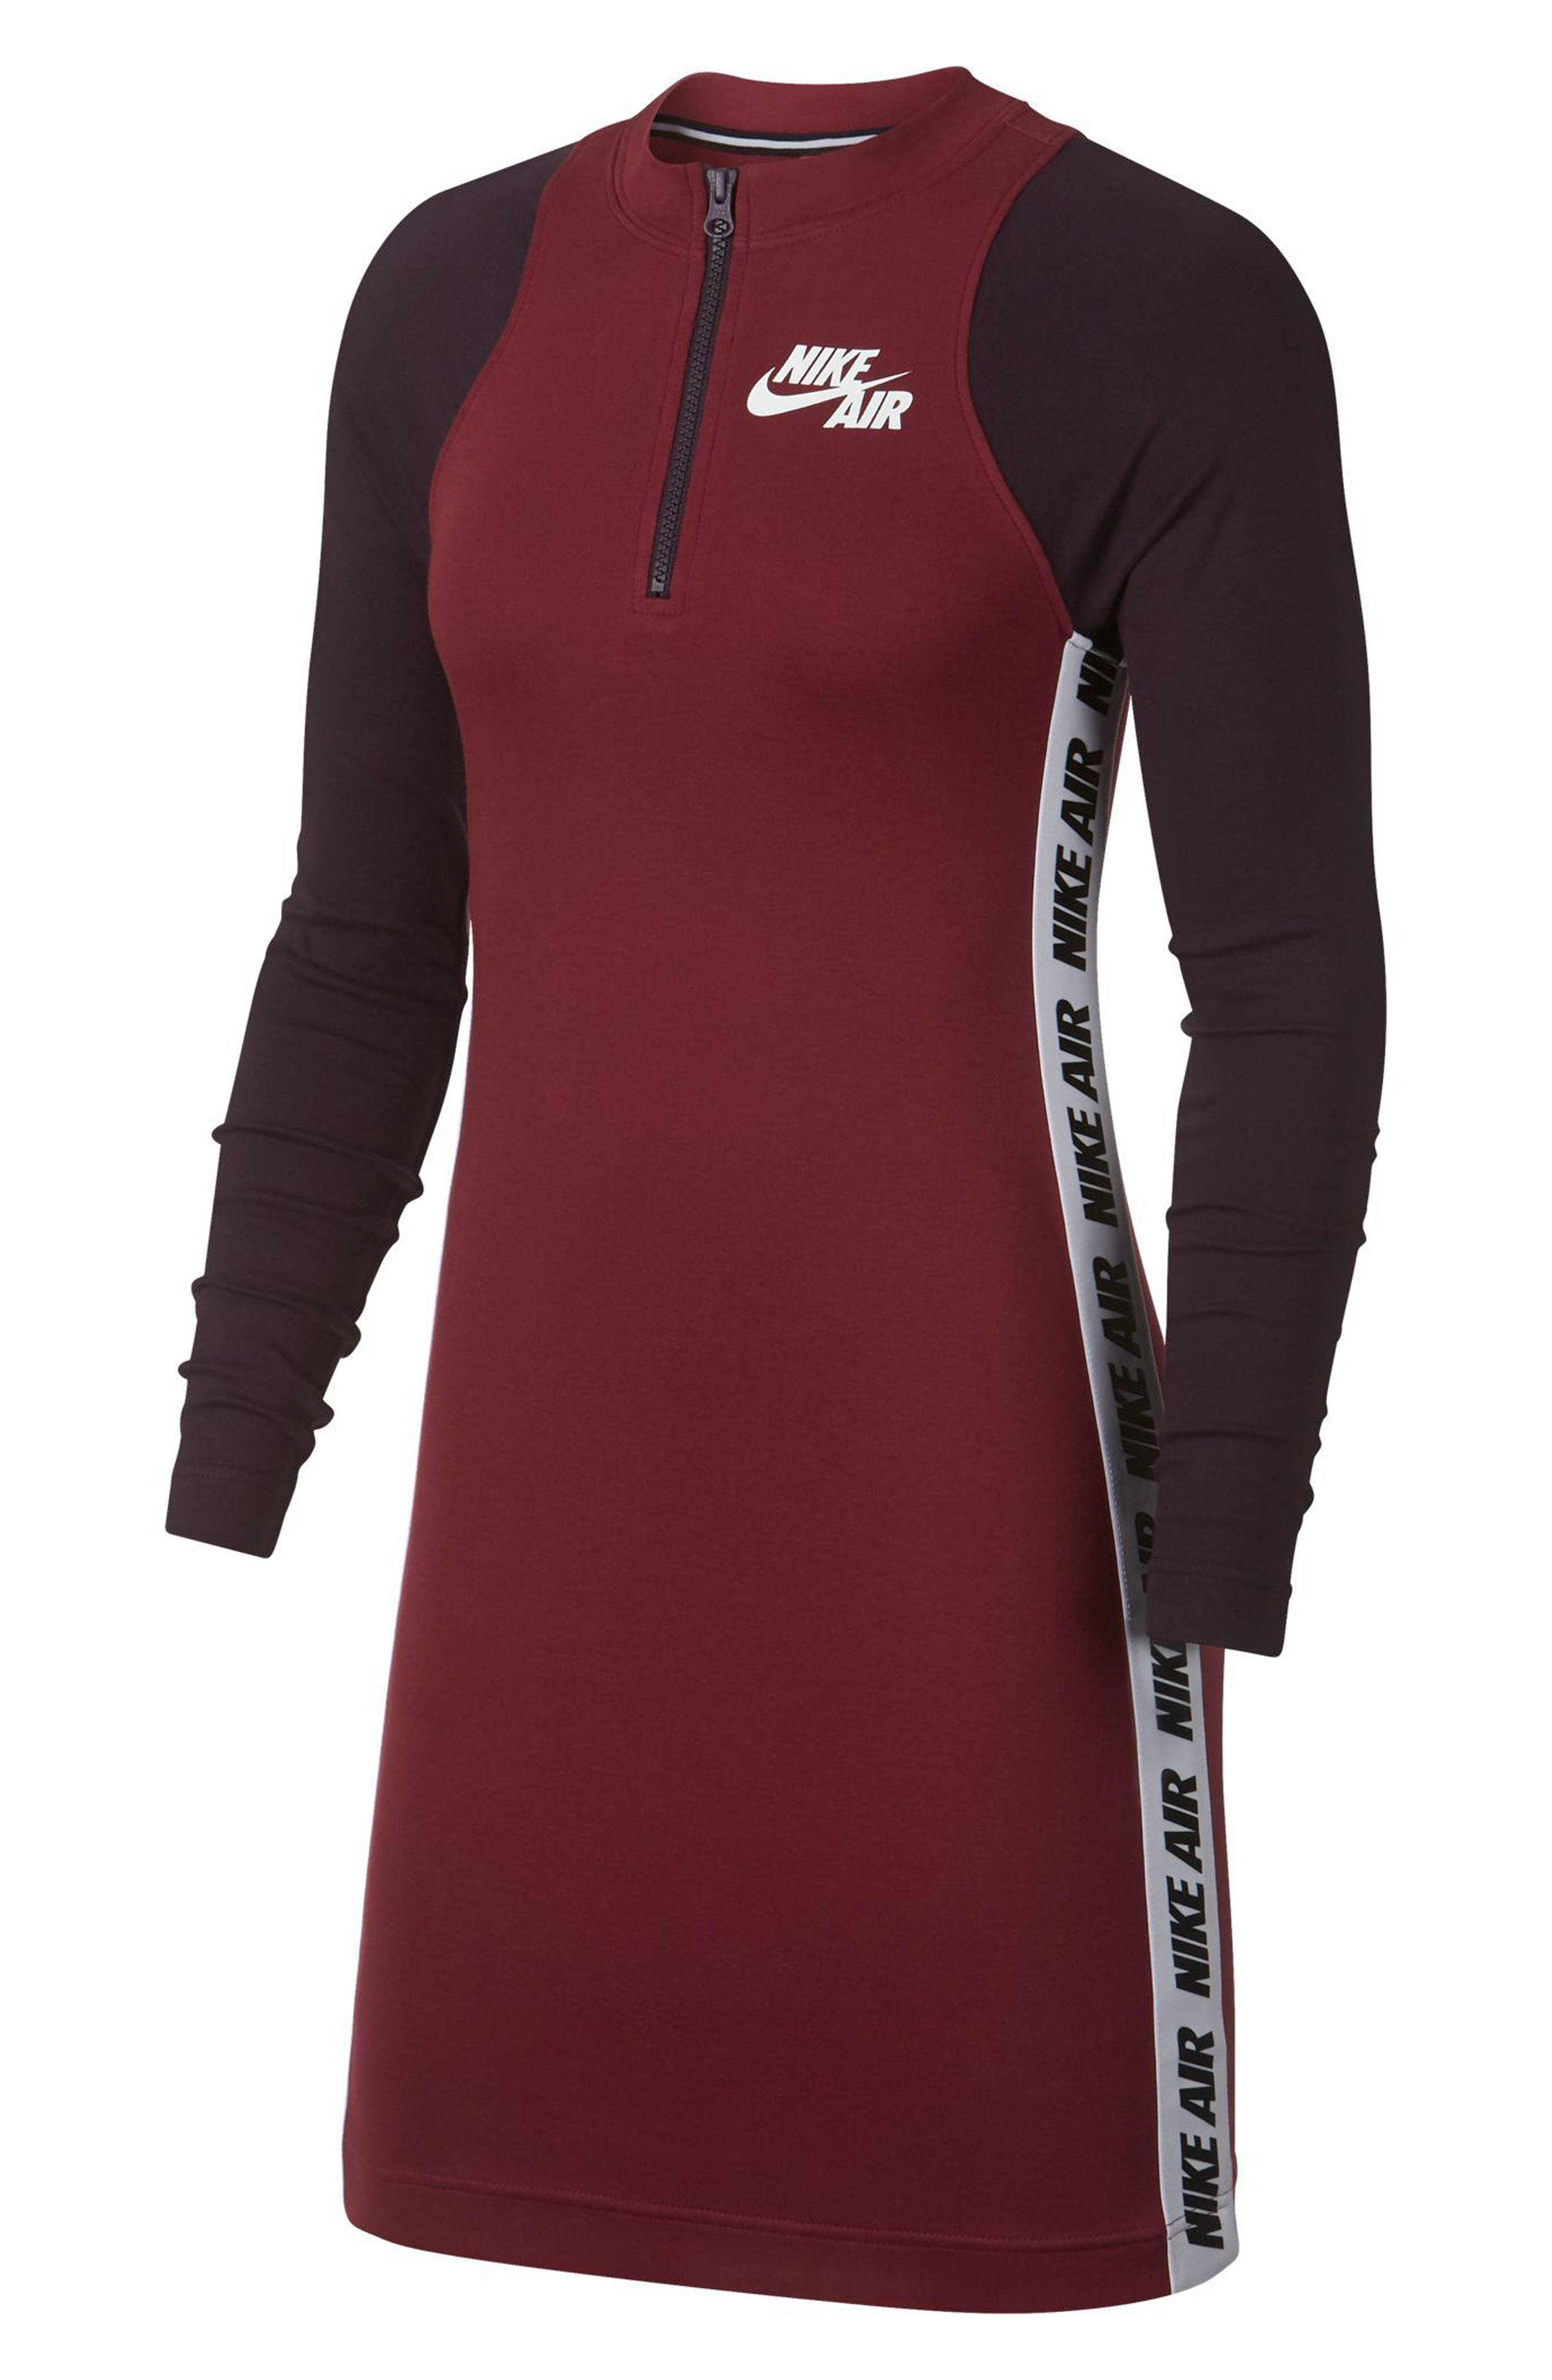 Sportswear Body-Con Jersey Dress,                             Main thumbnail 1, color,                             TEAM RED